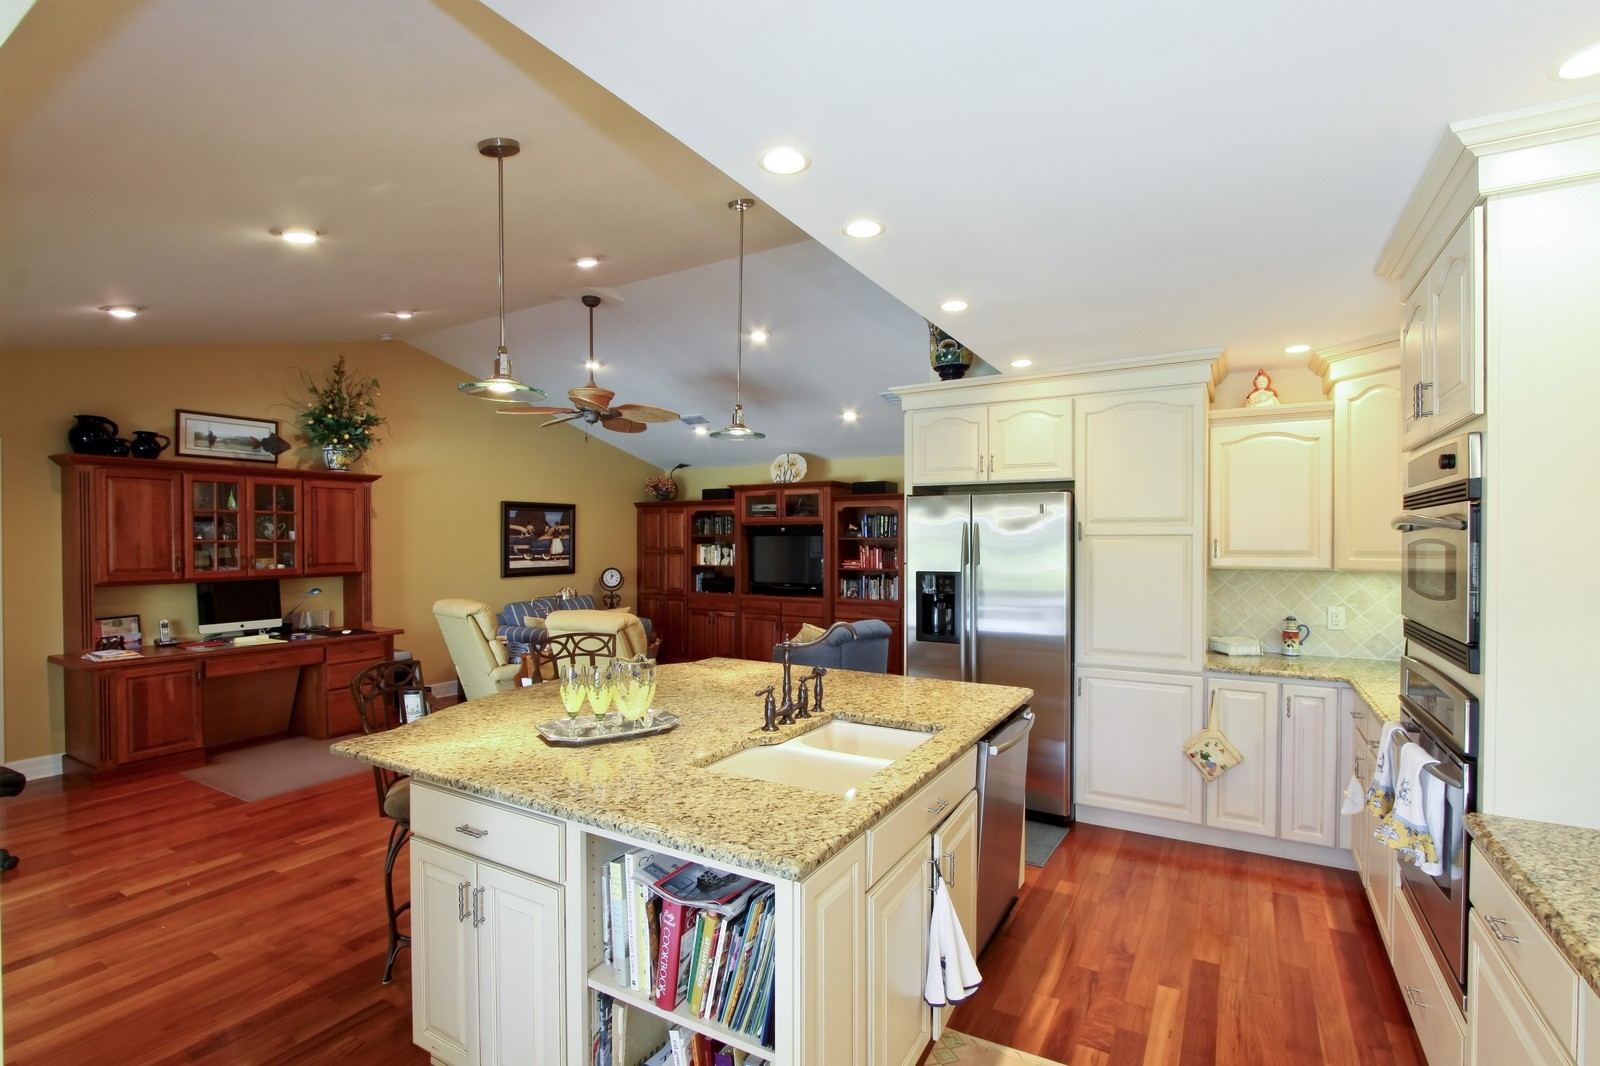 Real Estate Photography - 1986 Imperial GC Blvd, Naples, FL, 34110 - Kitchen / Dining Room